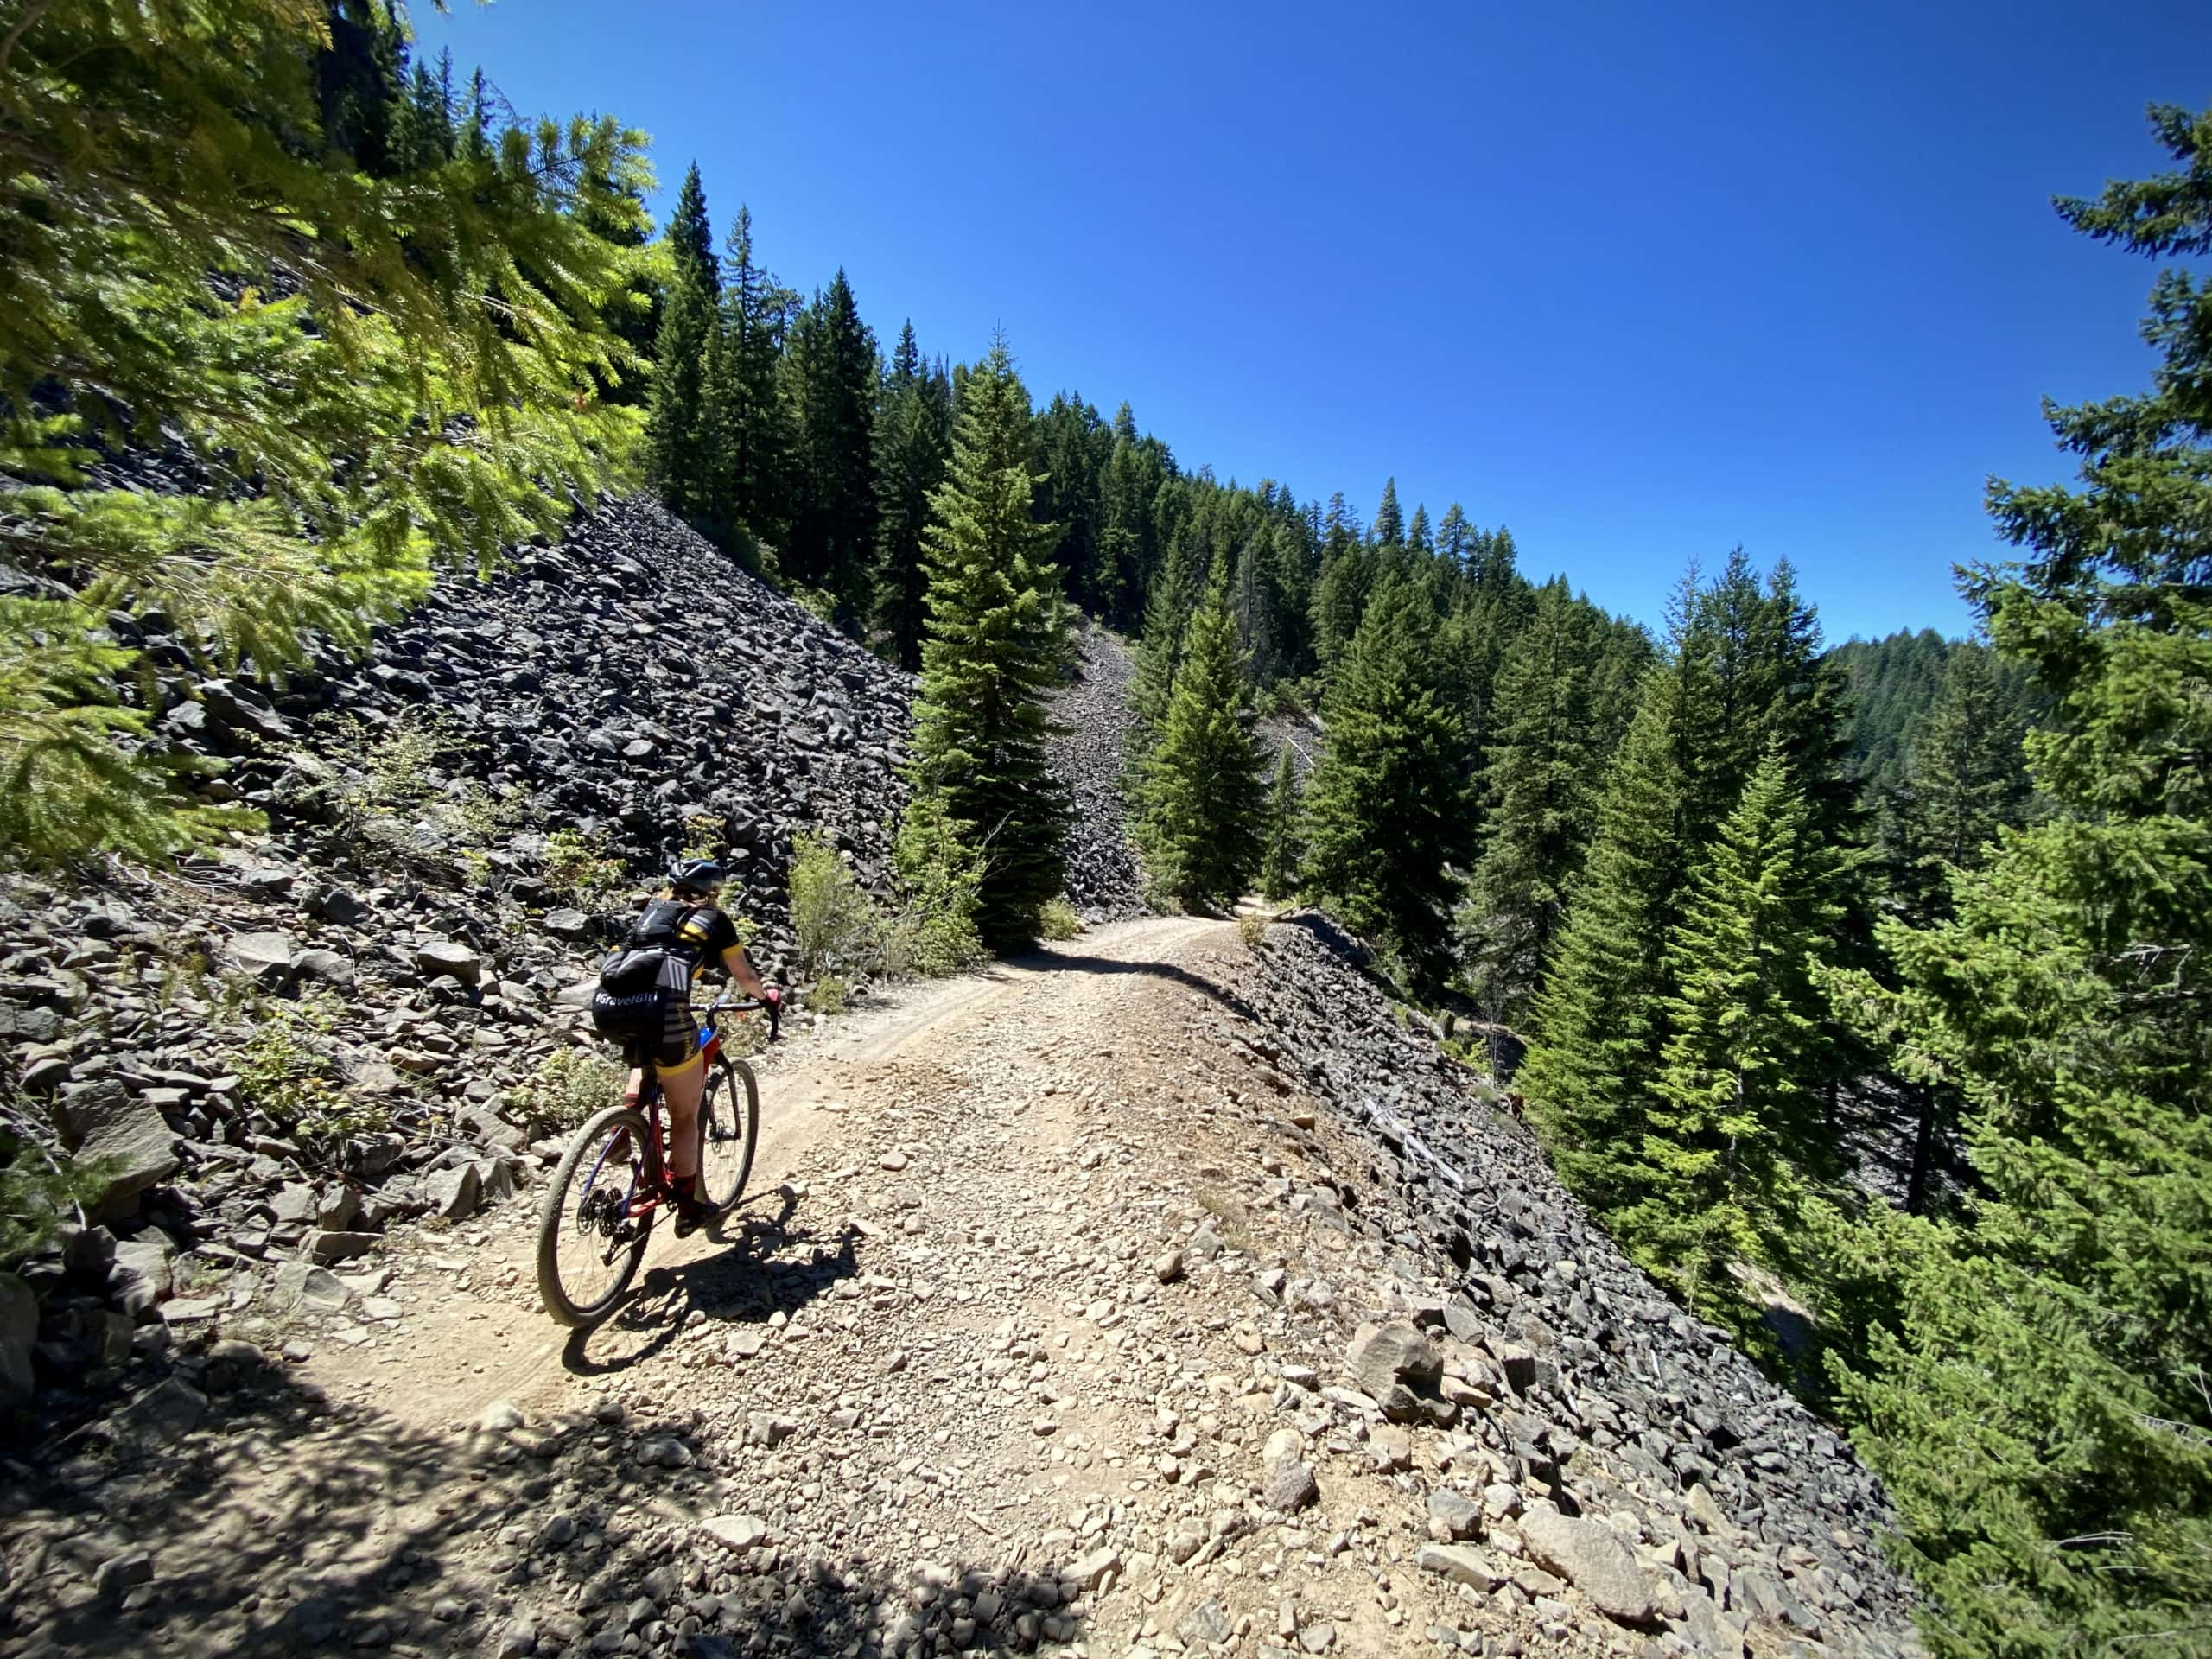 Cyclist descending the rugged jeep track to Keeps Mill along the White River in Oregon.